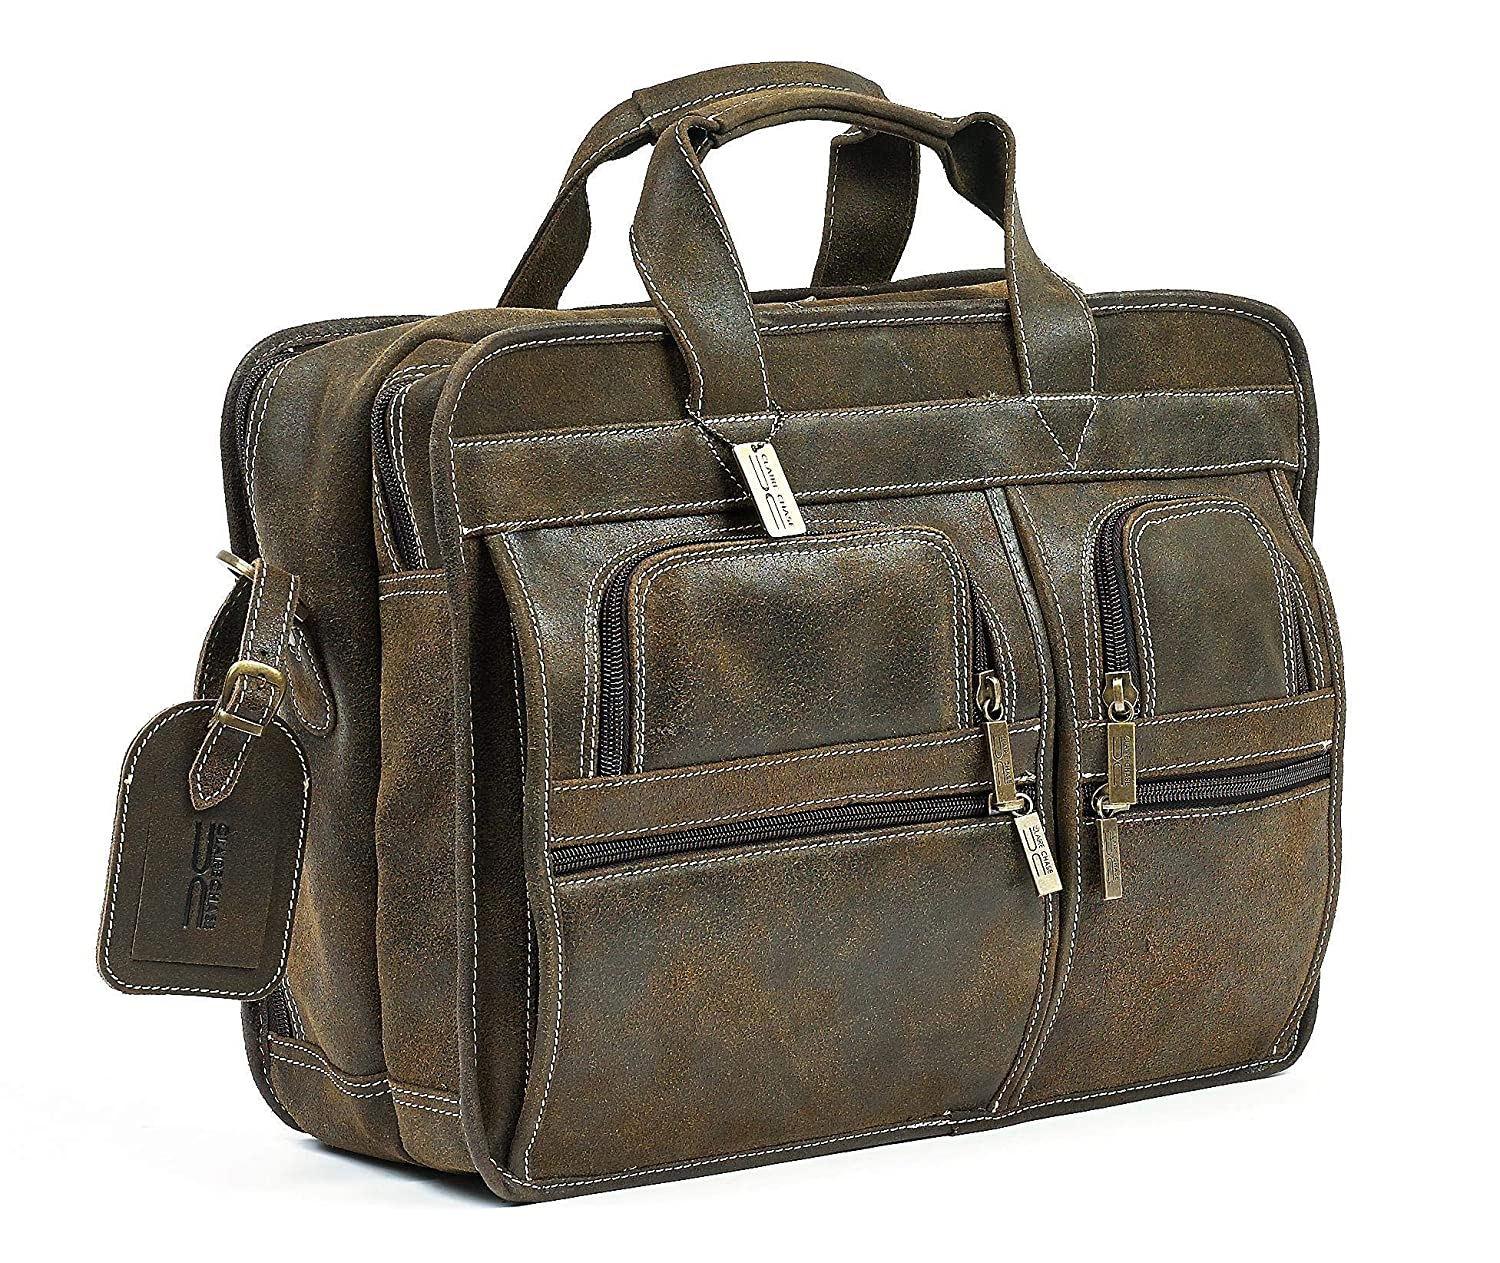 Claire Chase Executive Computer Brief B00H2XY4HS ブラウン(Distressed Brown) One Size